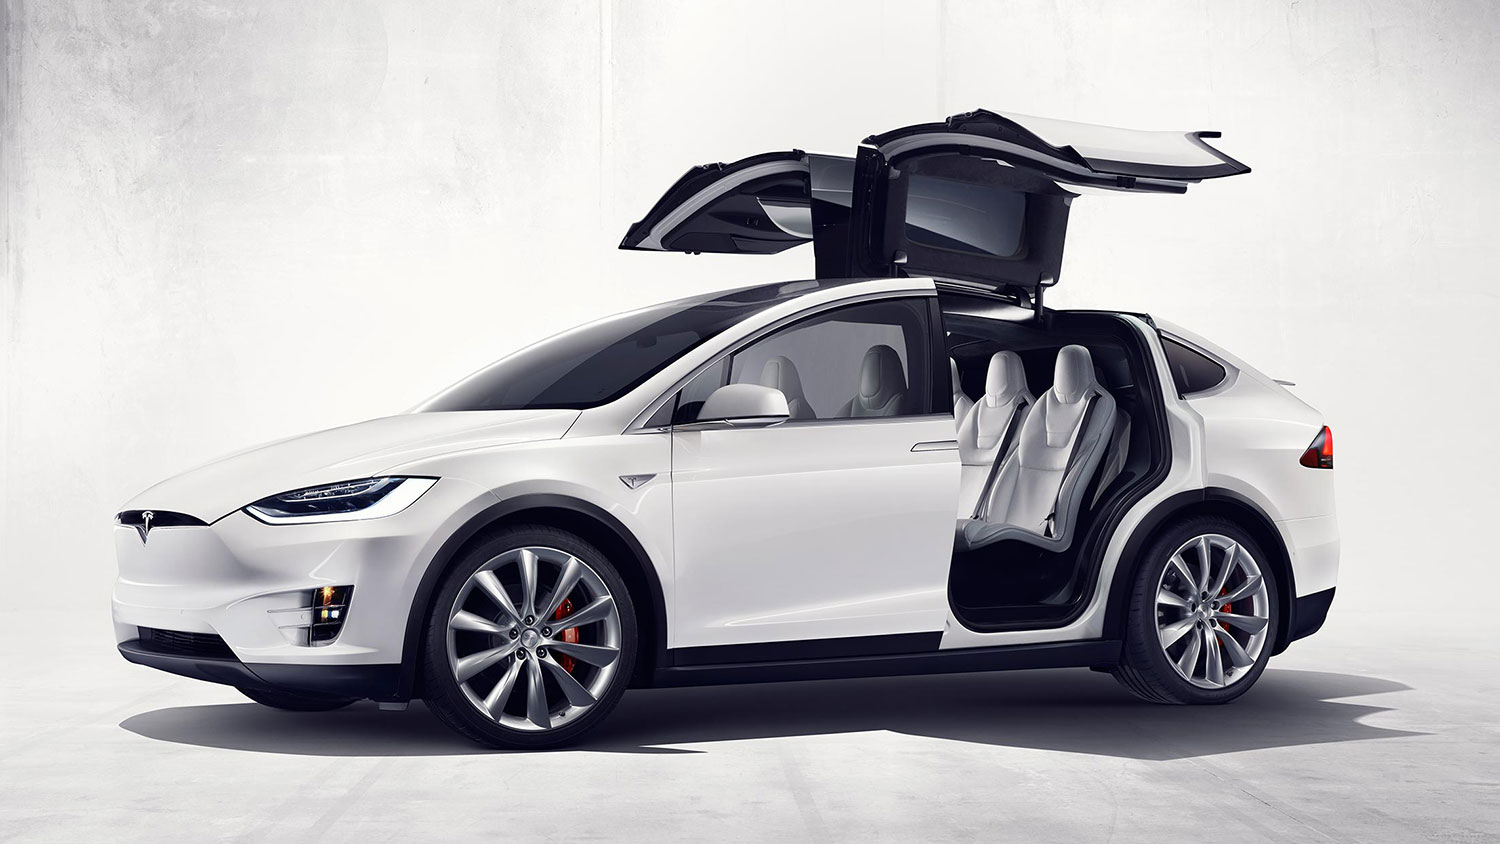 Tesla Unveils New Faster Accelerating Vehicles with Longer Battery Range